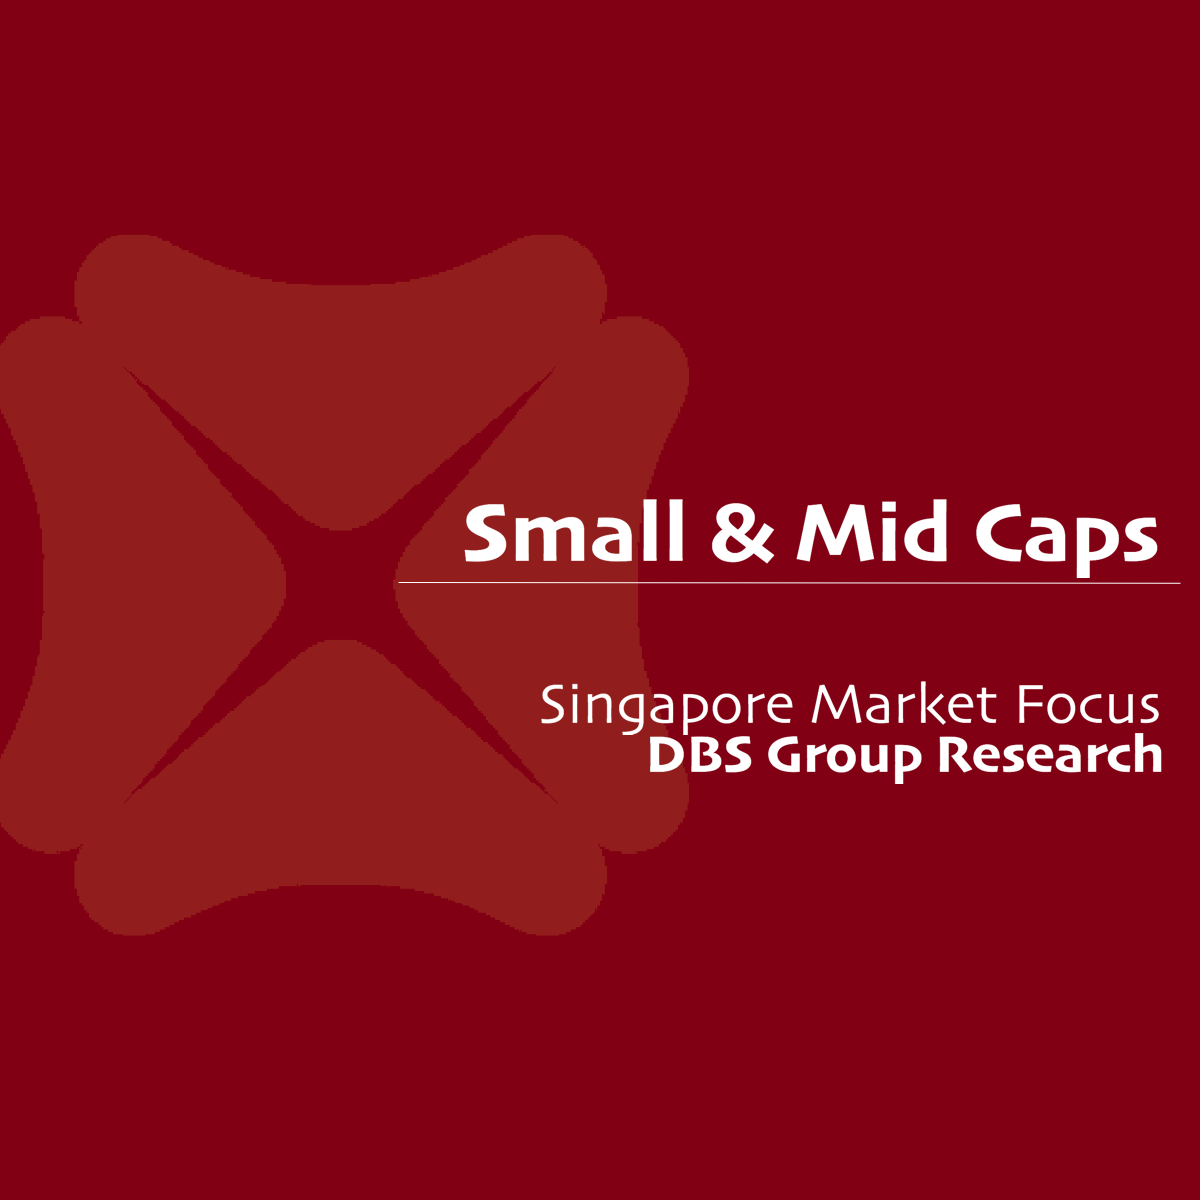 Small & Mid Caps - DBS Vickers 2017-01-18: Focus on growth in the new year